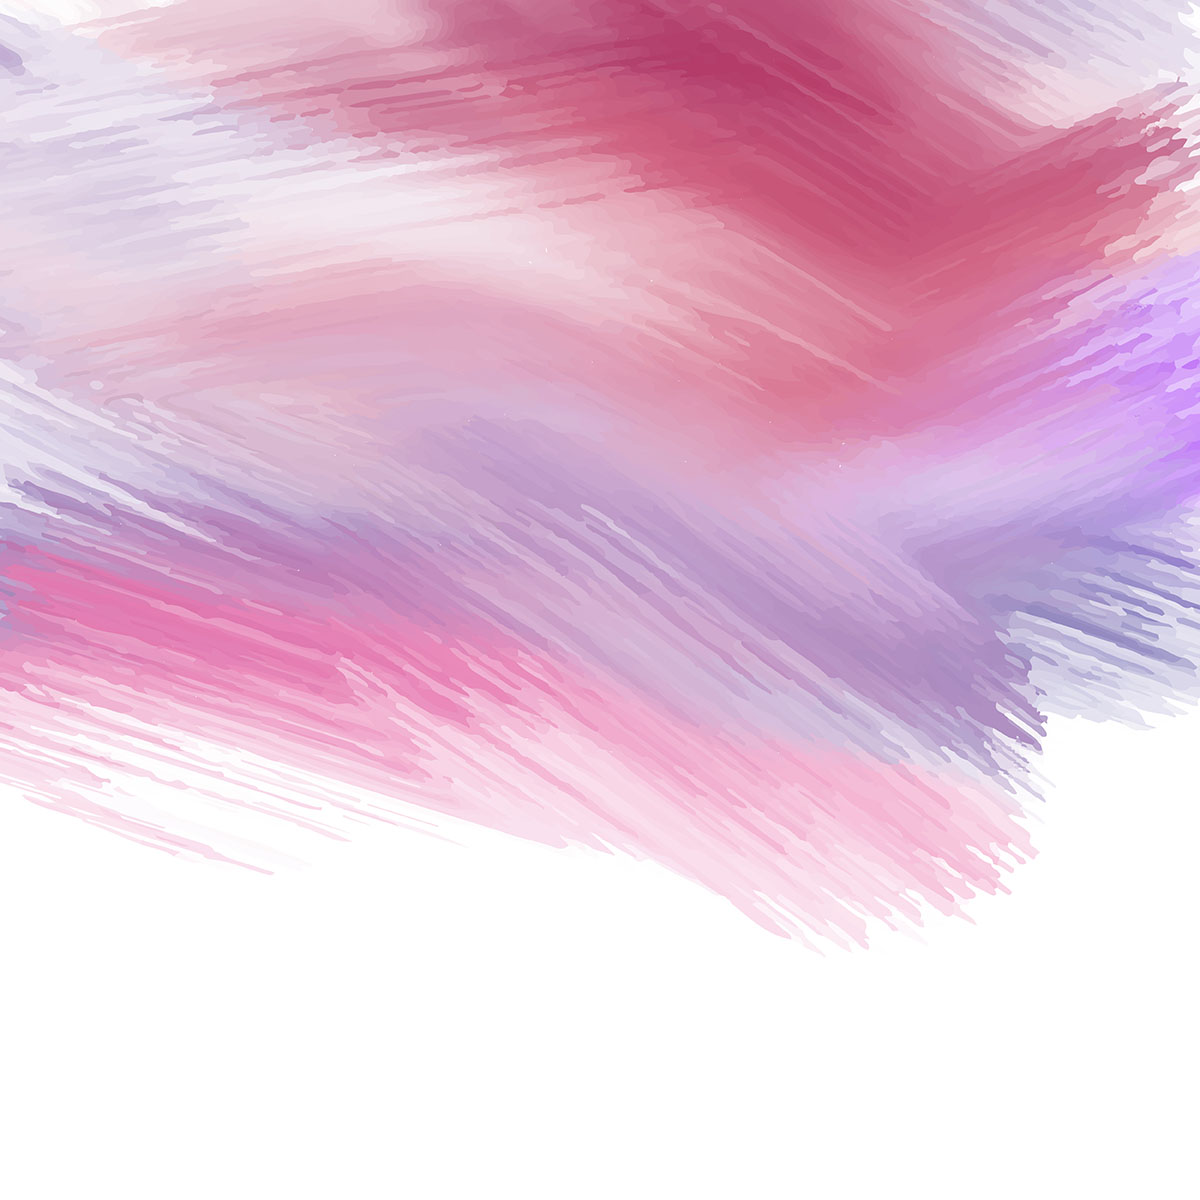 Paint strokes background - Download Free Vectors, Clipart ...